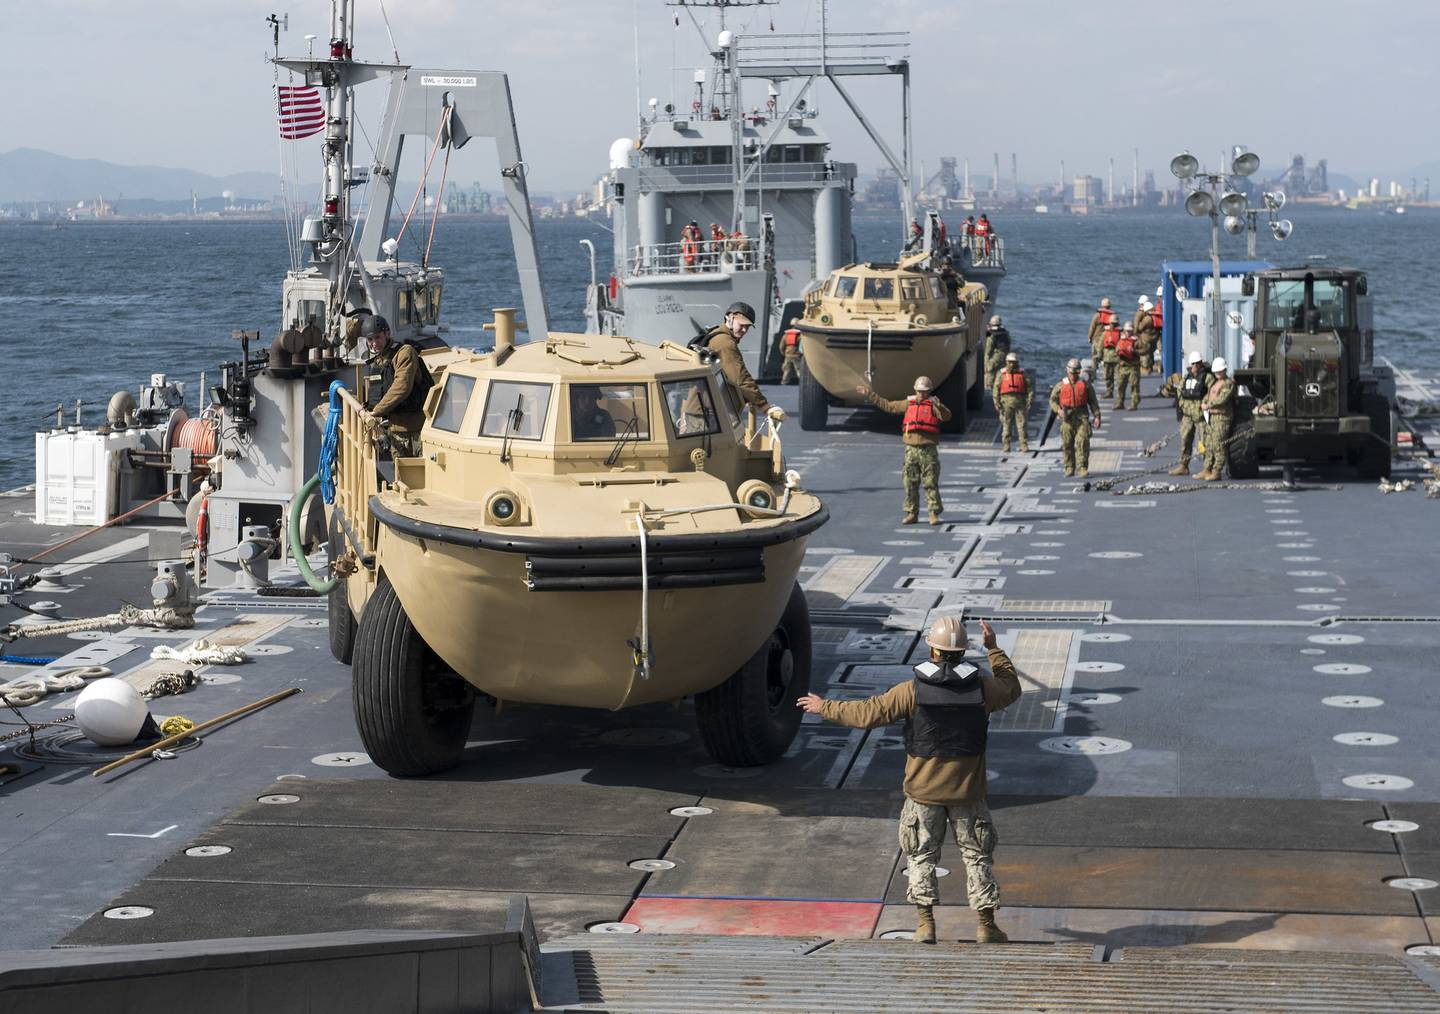 U.S. Navy, Marine Corps and Army personnel offload equipment from the Military Sealift Command maritime prepositioning force ship USNS Pililaau (T-AK 304) on April 10, 2017, in Pohang, South Korea.